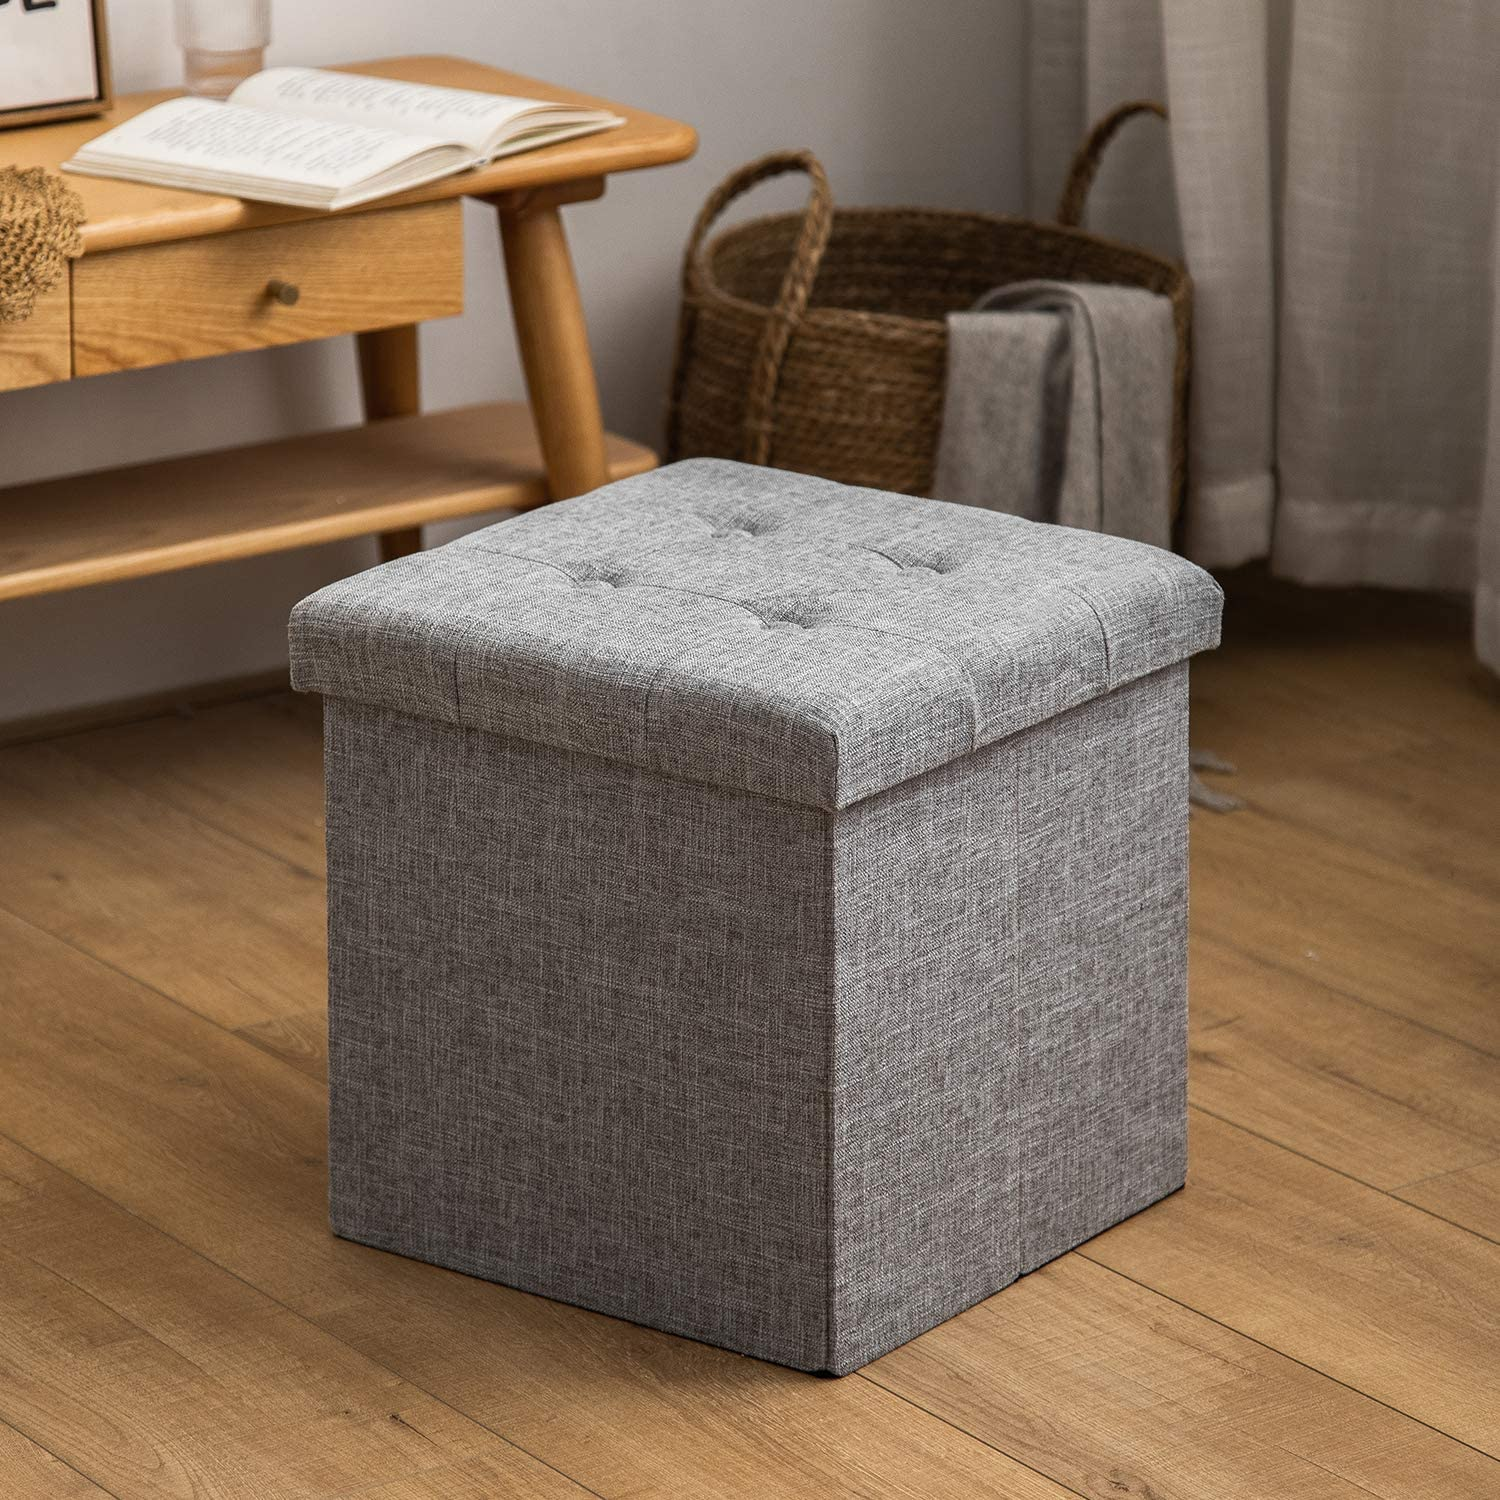 HuiDao Storage Ottoman Bench 15x15x15 Inch Super Thick Folding Storage Ottoman Cube Toy Chest Foot Rest Stool Storage Chair for Living Room Bedroom Office (Linen - Grey)